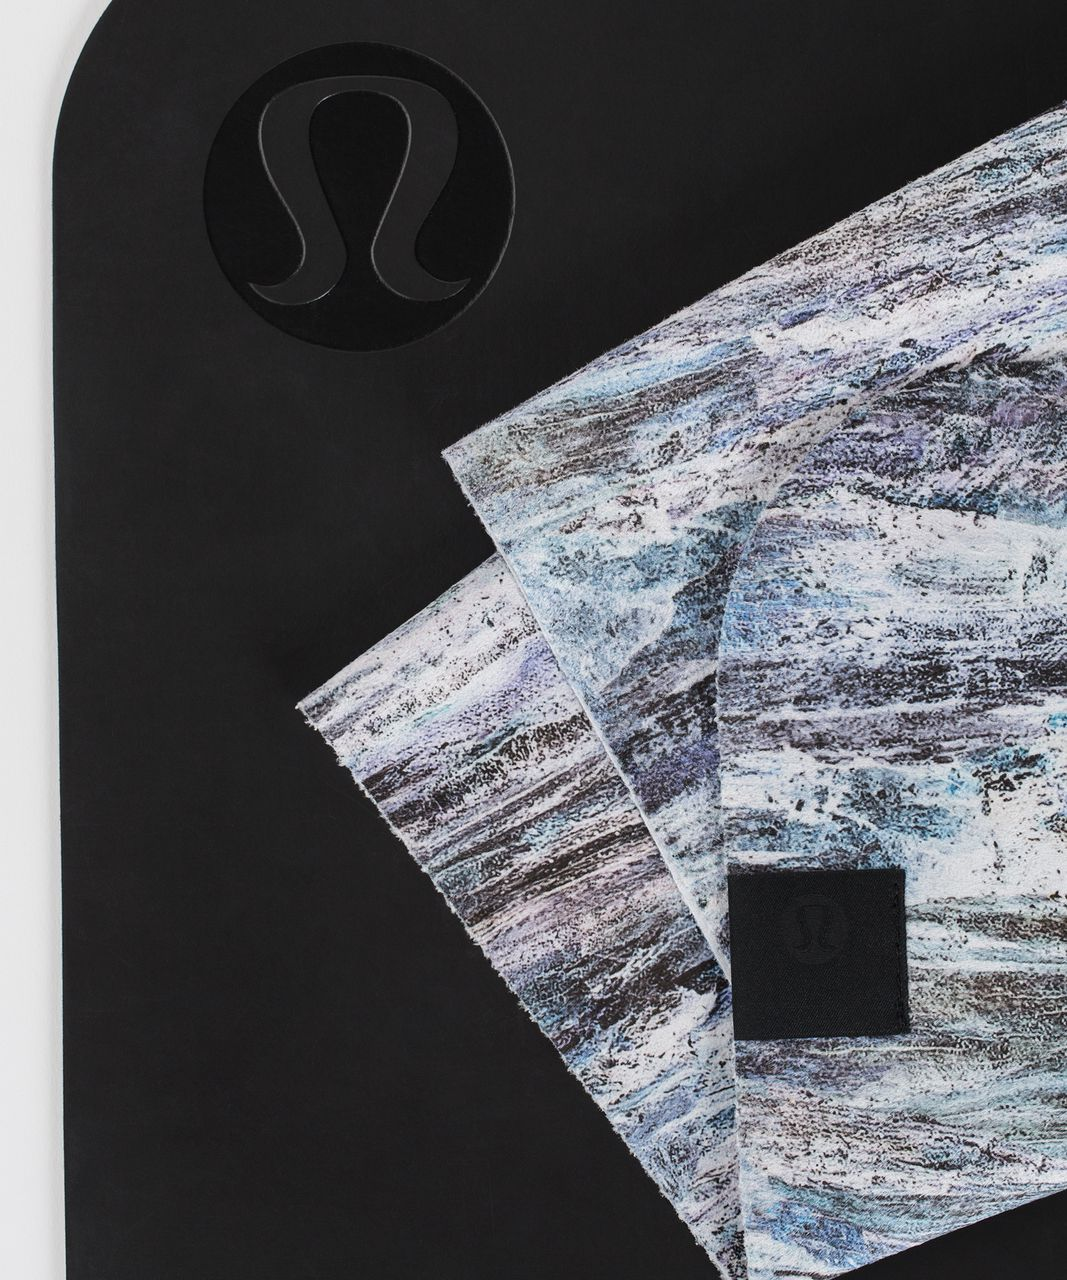 Lululemon The (Small) Towel - The Towel Maxi Aerial Drift